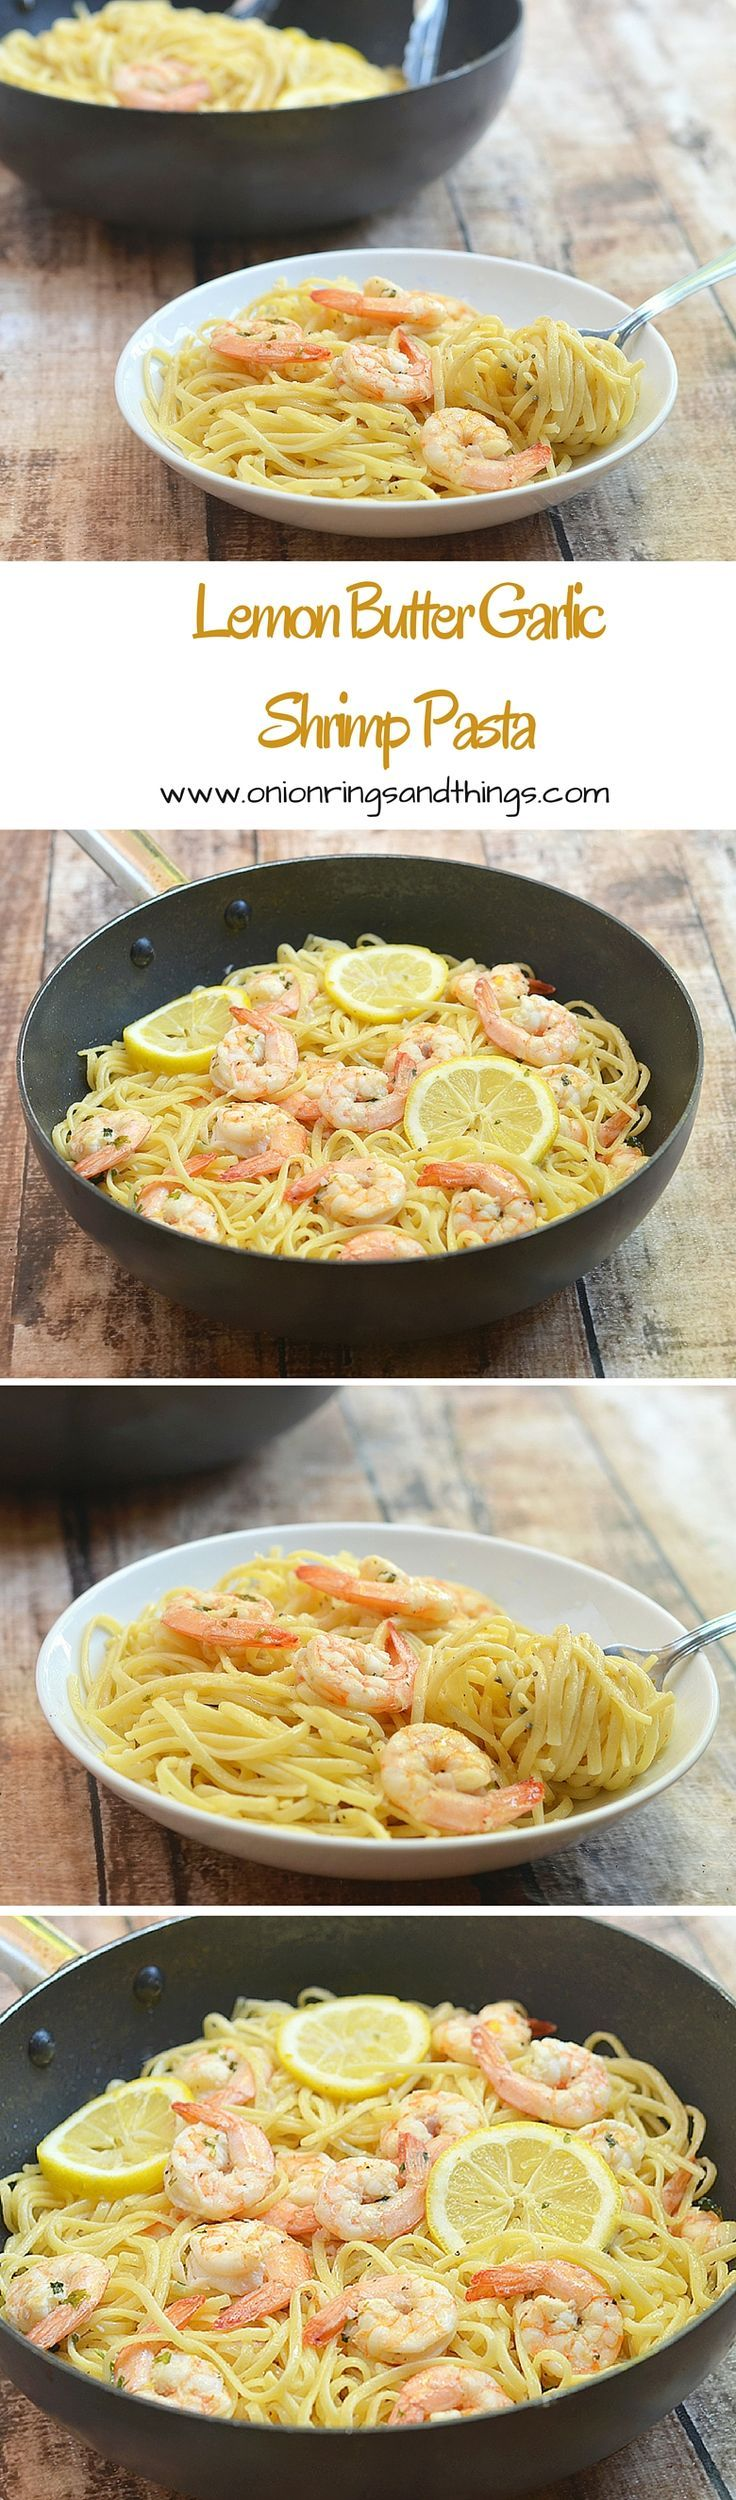 With silky linguine noodles and plump shrimps drenched in buttery, garlicky and lemony flavors, this lemon butter garlic shrimp pasta make a refreshing yet satisfying meal